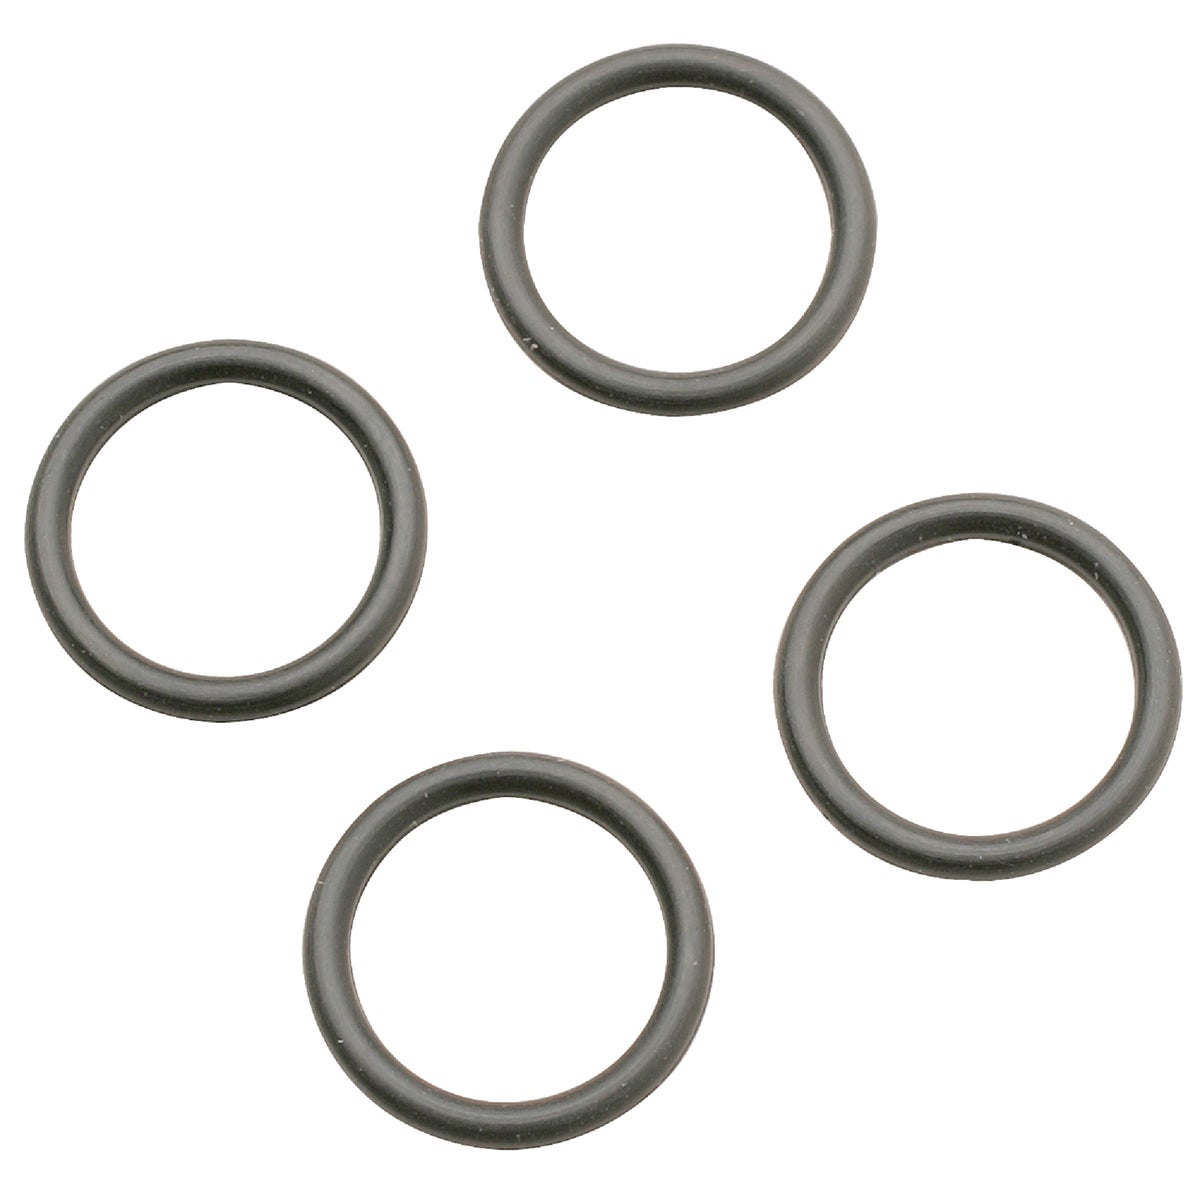 "1/2""ID O-RINGS - 403469 by Plumb Pak/keeney Mfg"